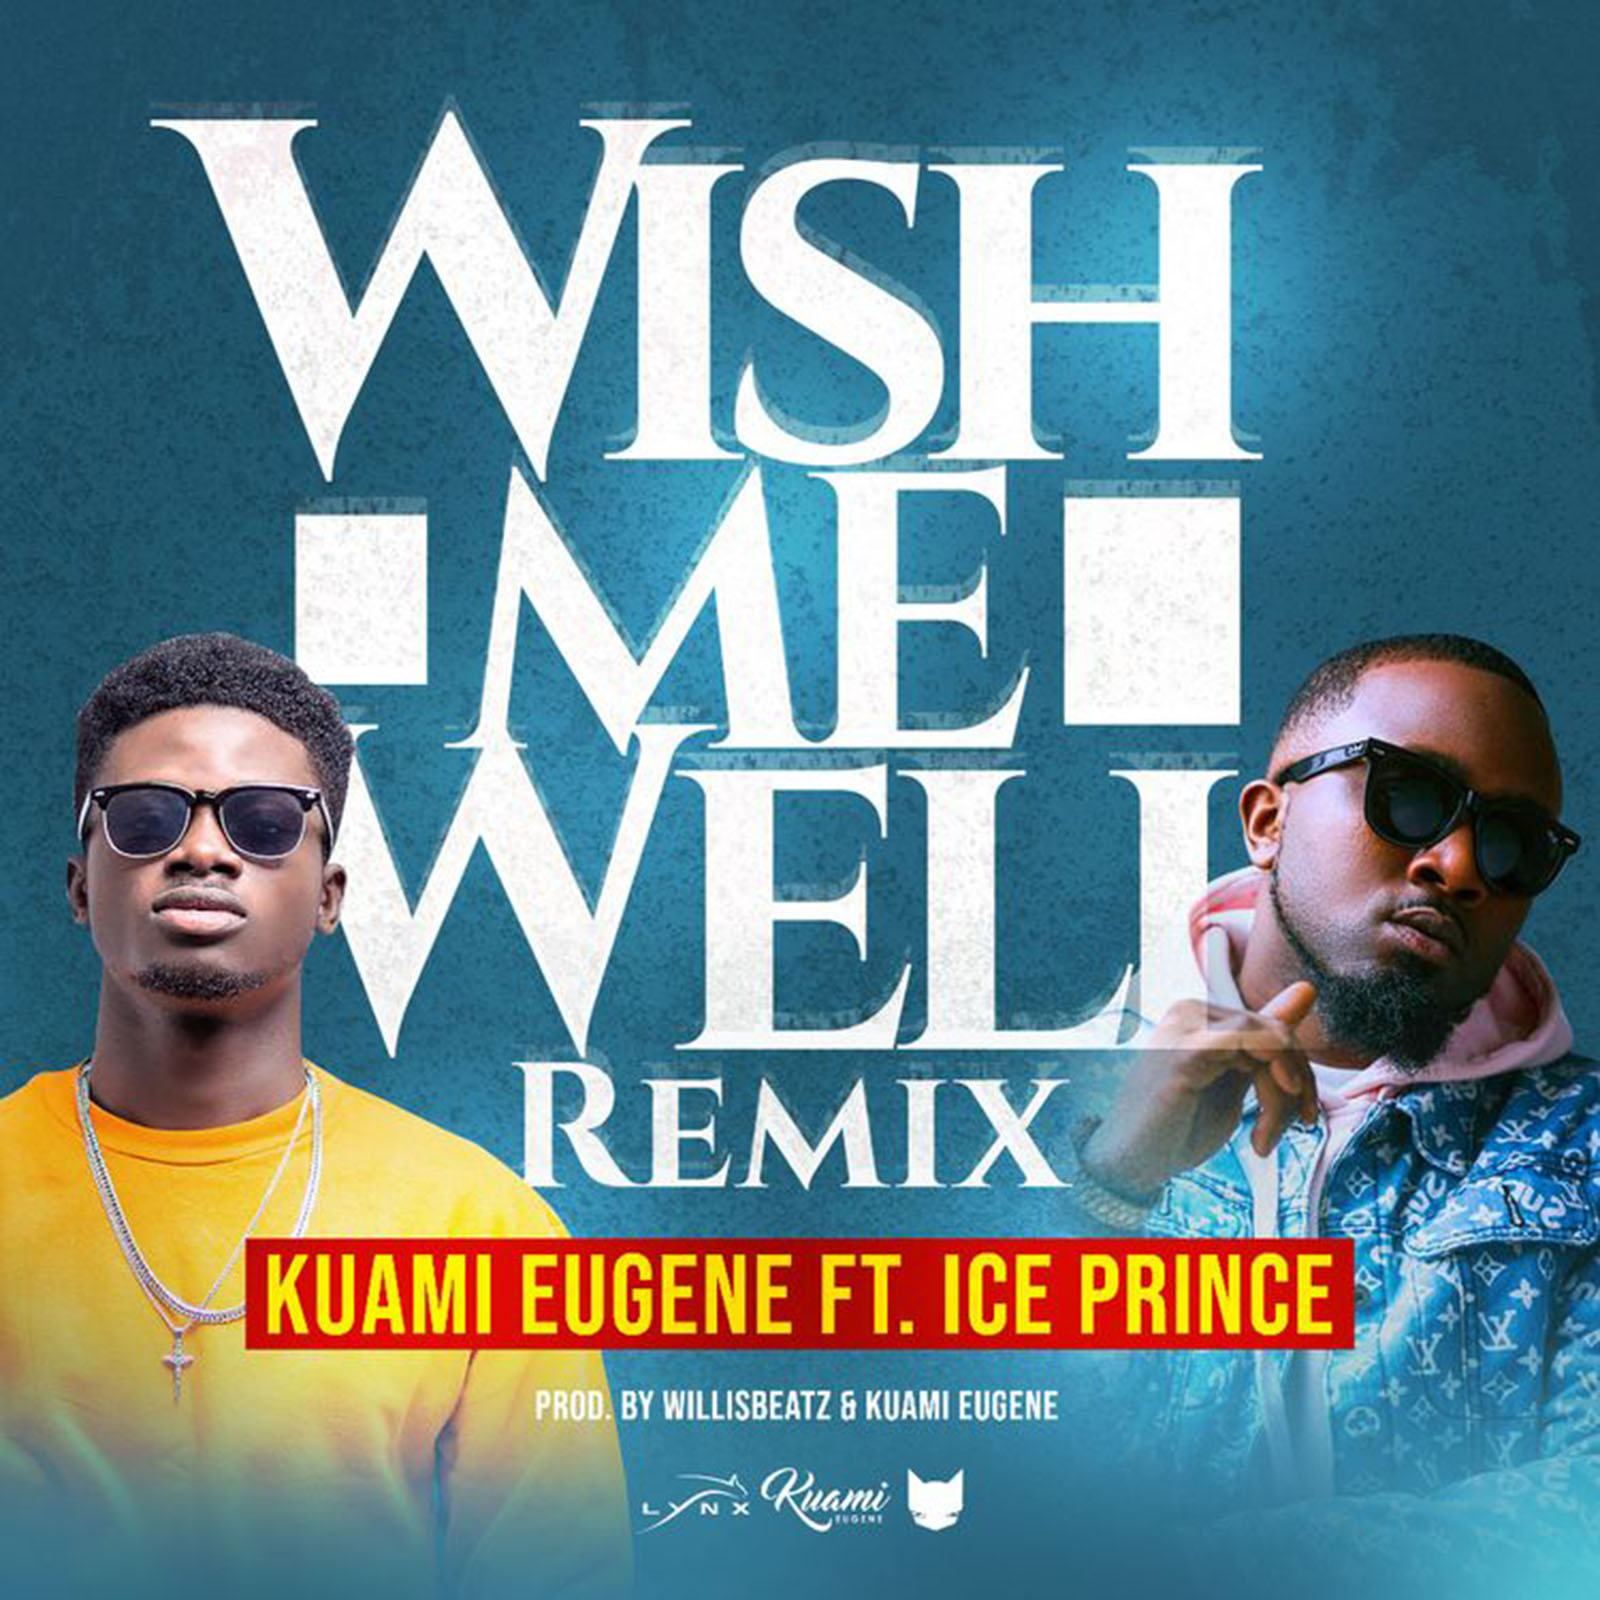 Wish You Well Remix by Kuami Eugene feat. Ice Prince